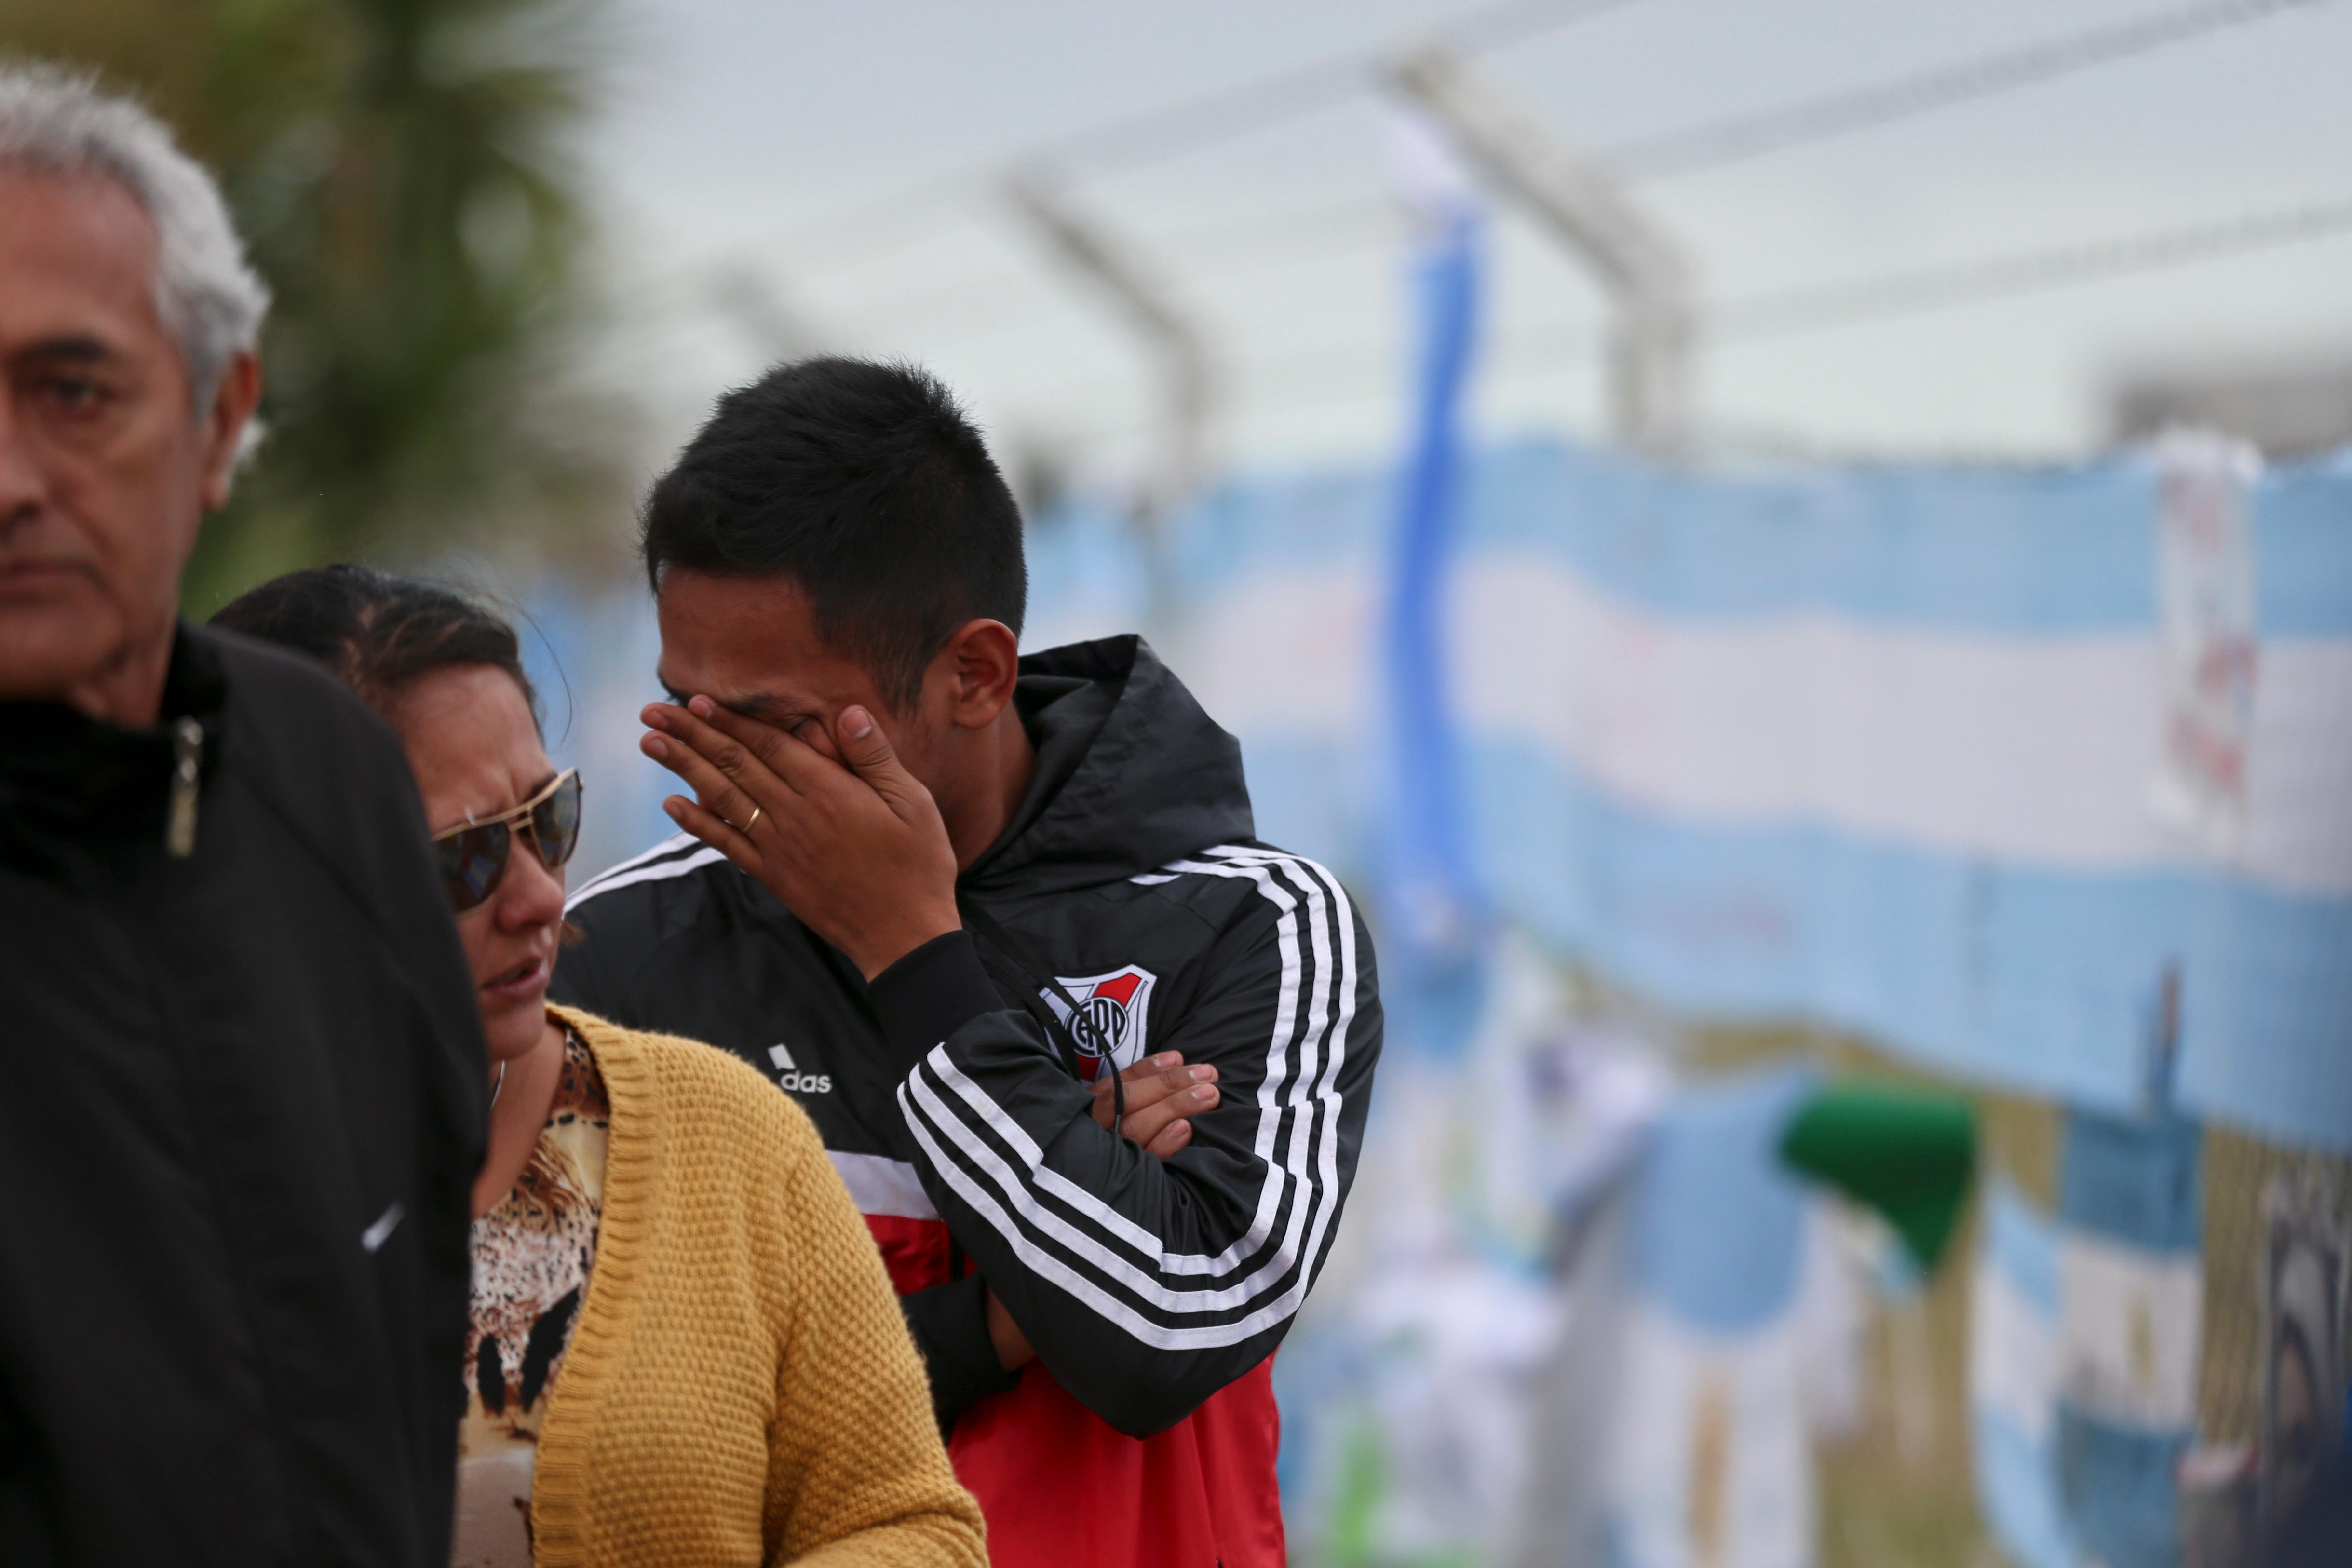 A man outside the Mar de Plata Naval Base wipes a tear after the navy announced a sound detected during the search for the missing ARA San Juan submarine is consistent with that of an explosion, in Mar de Plata, Argentina, Thursday, Nov. 23, 2017. A Navy spokesperson said the search will continue until there is full certainty about the fate of the submarine, adding there was no sign the explosion might be linked to any attack. (AP Photo/Esteban Felix)